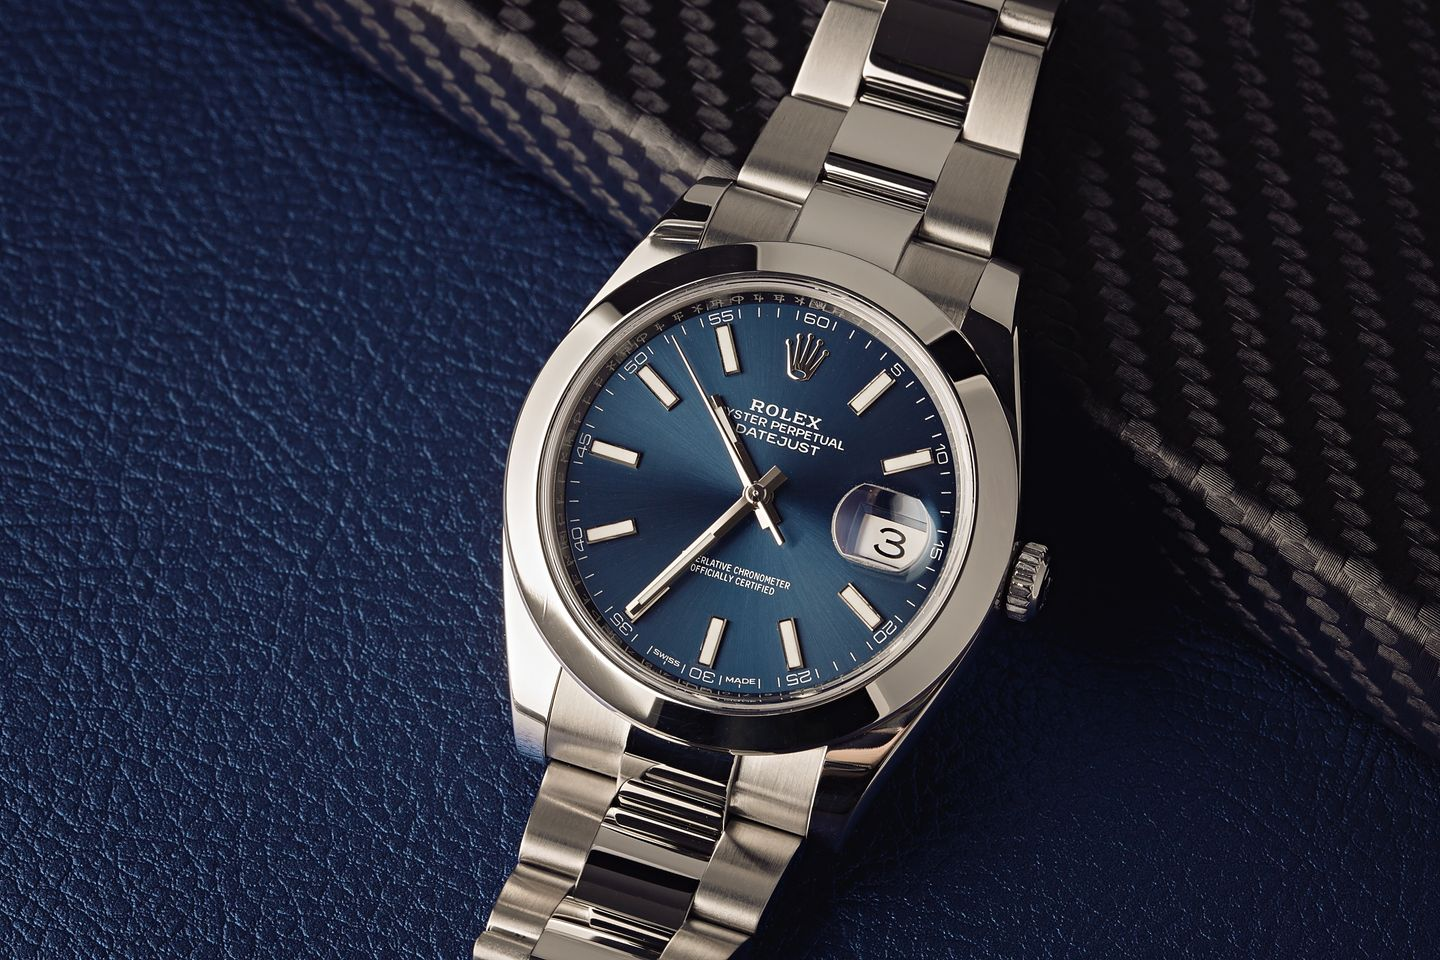 Evolution of the Rolex Datejust